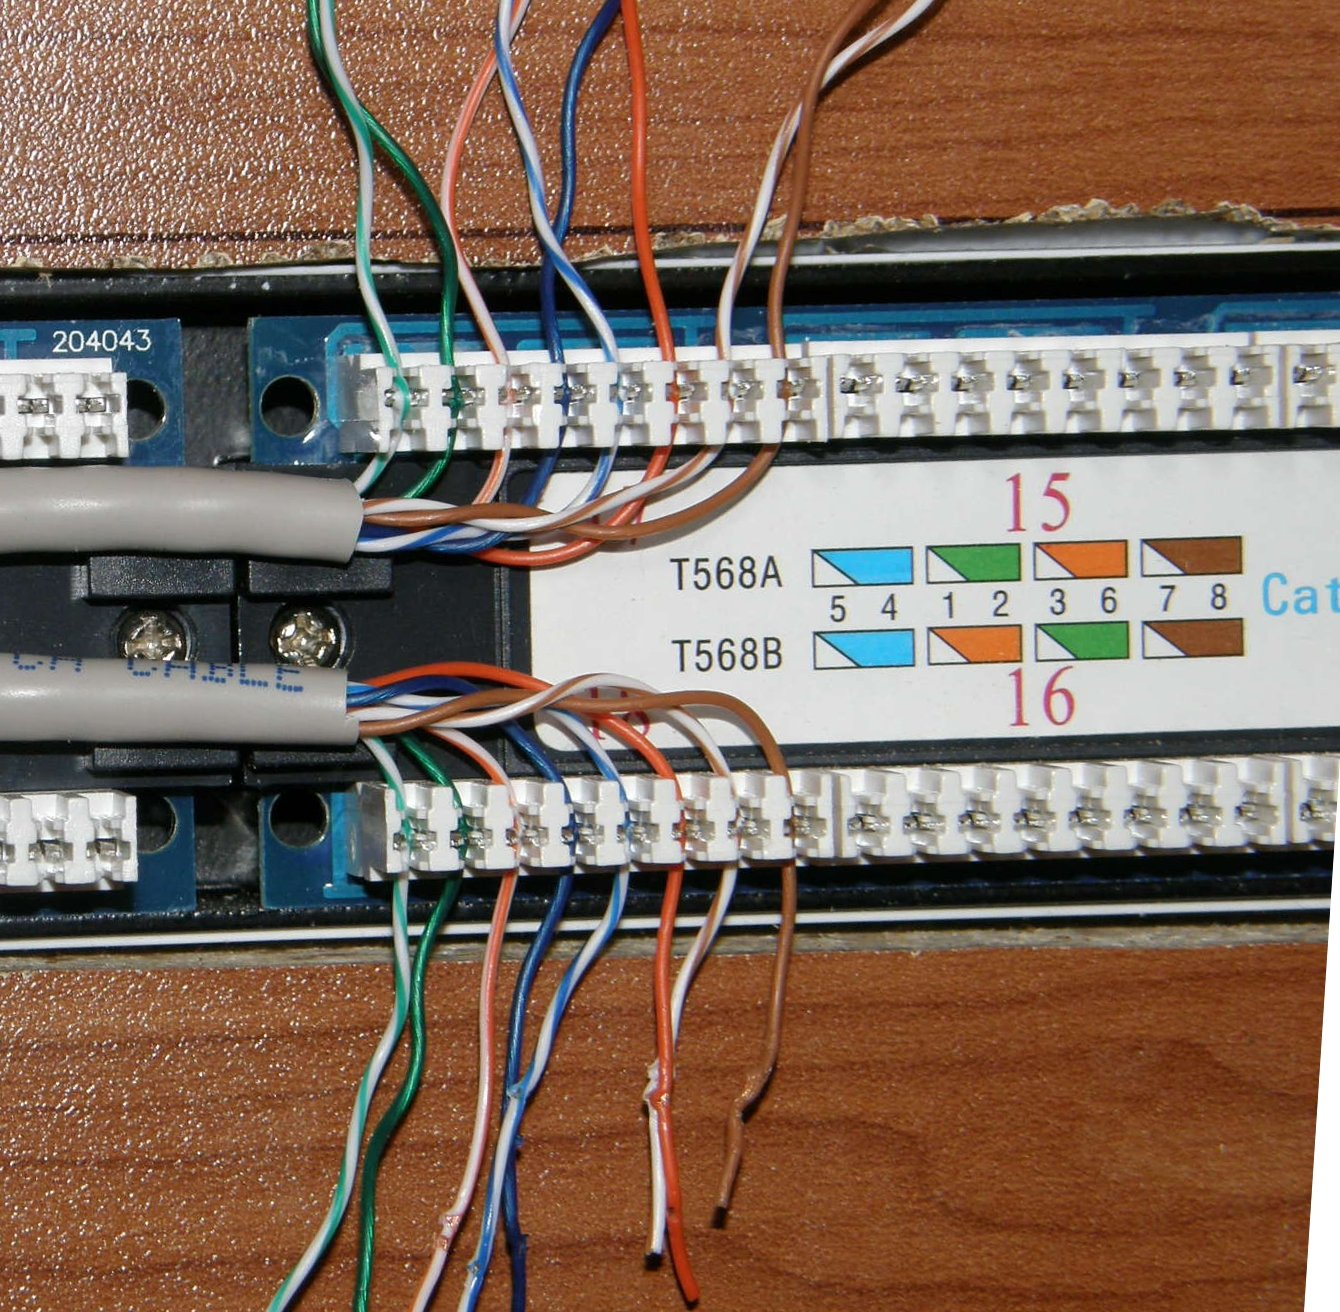 In Case You Need To Know : Wiring up a Home Network